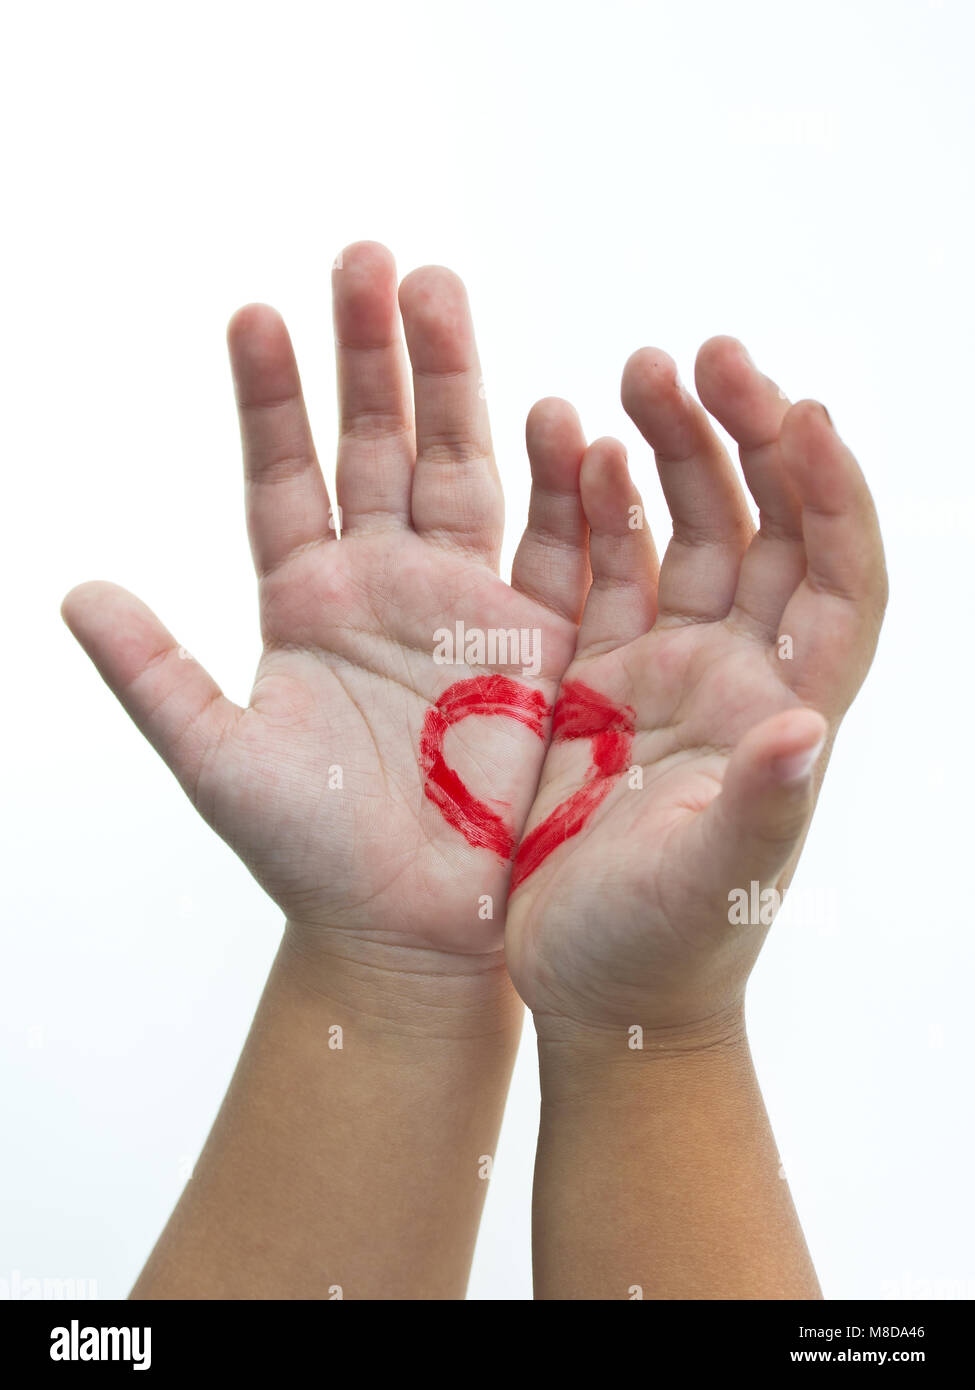 Heart in hands. Valentine's day, romance, love concept Stock Photo